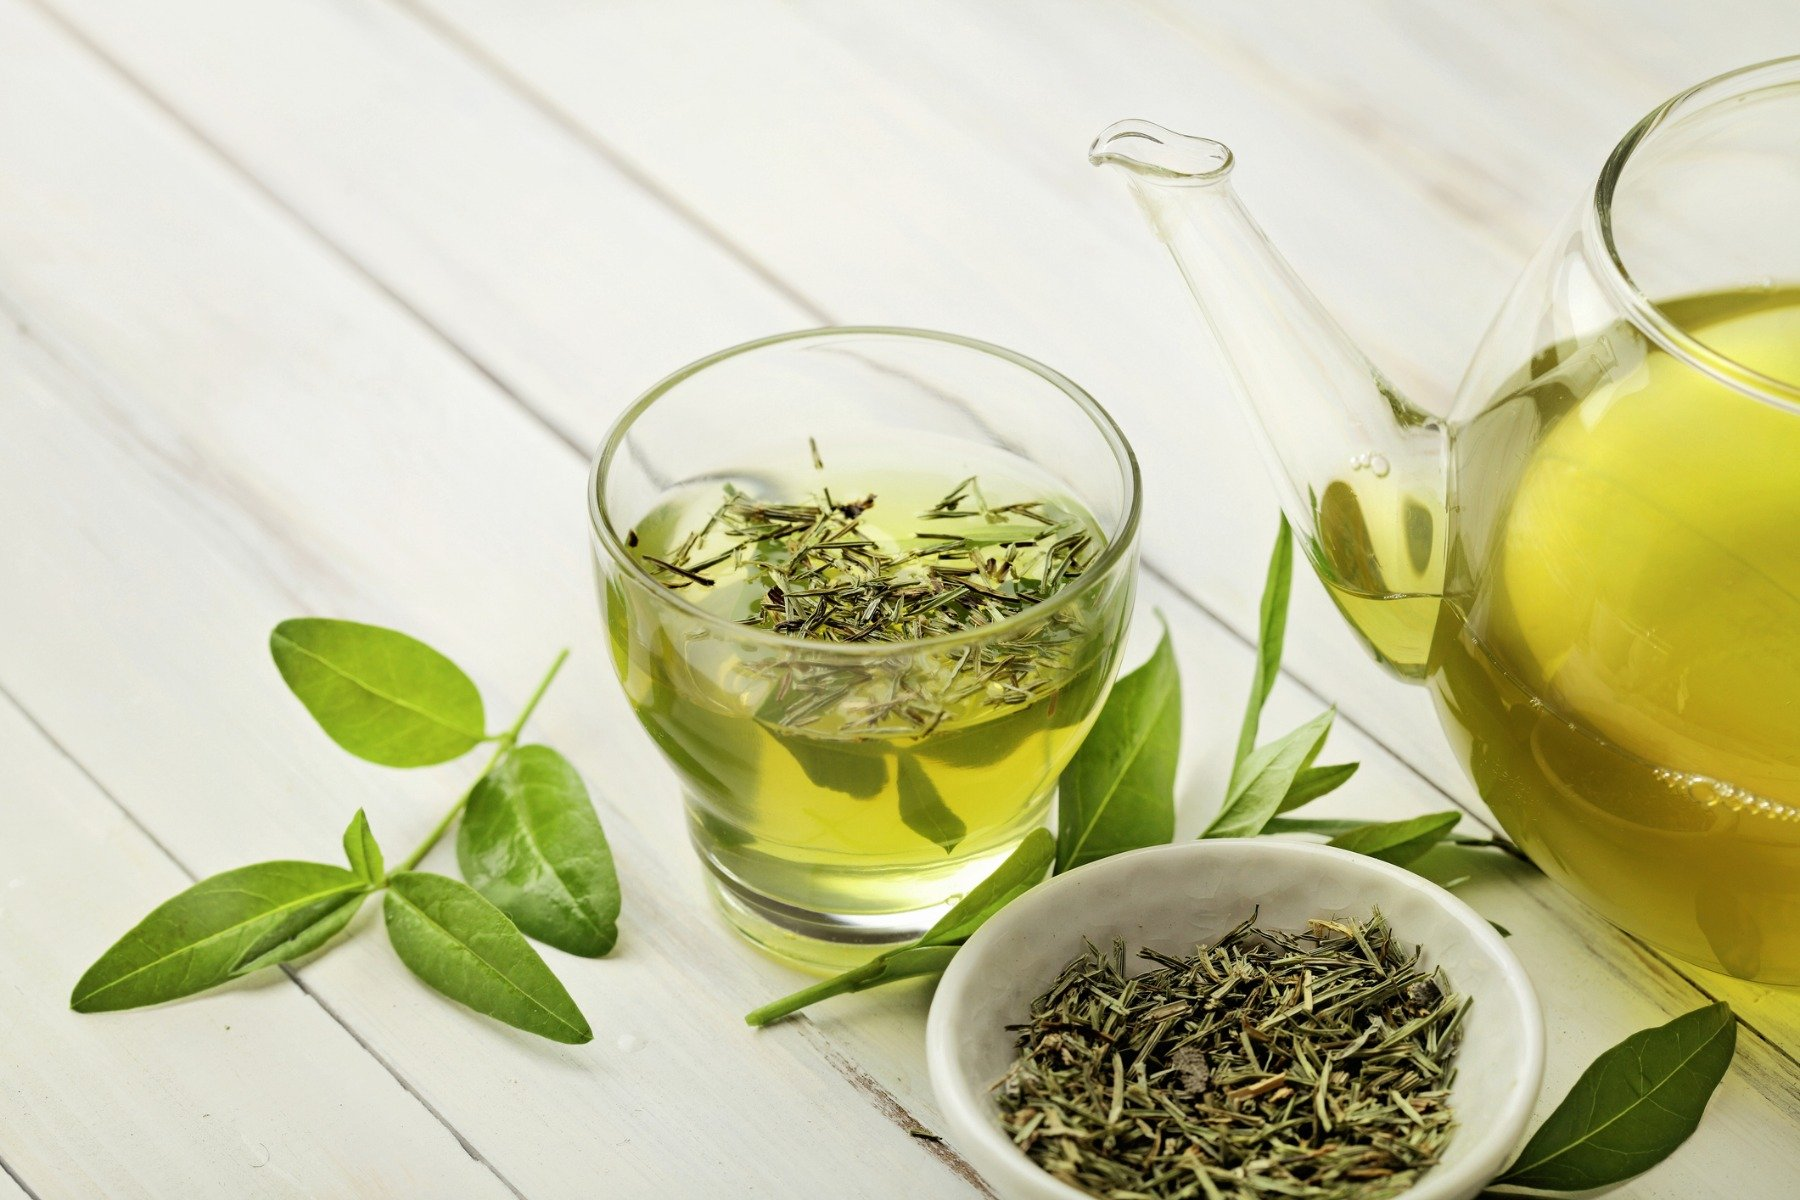 Green Tea prevents cardiovascular diseases